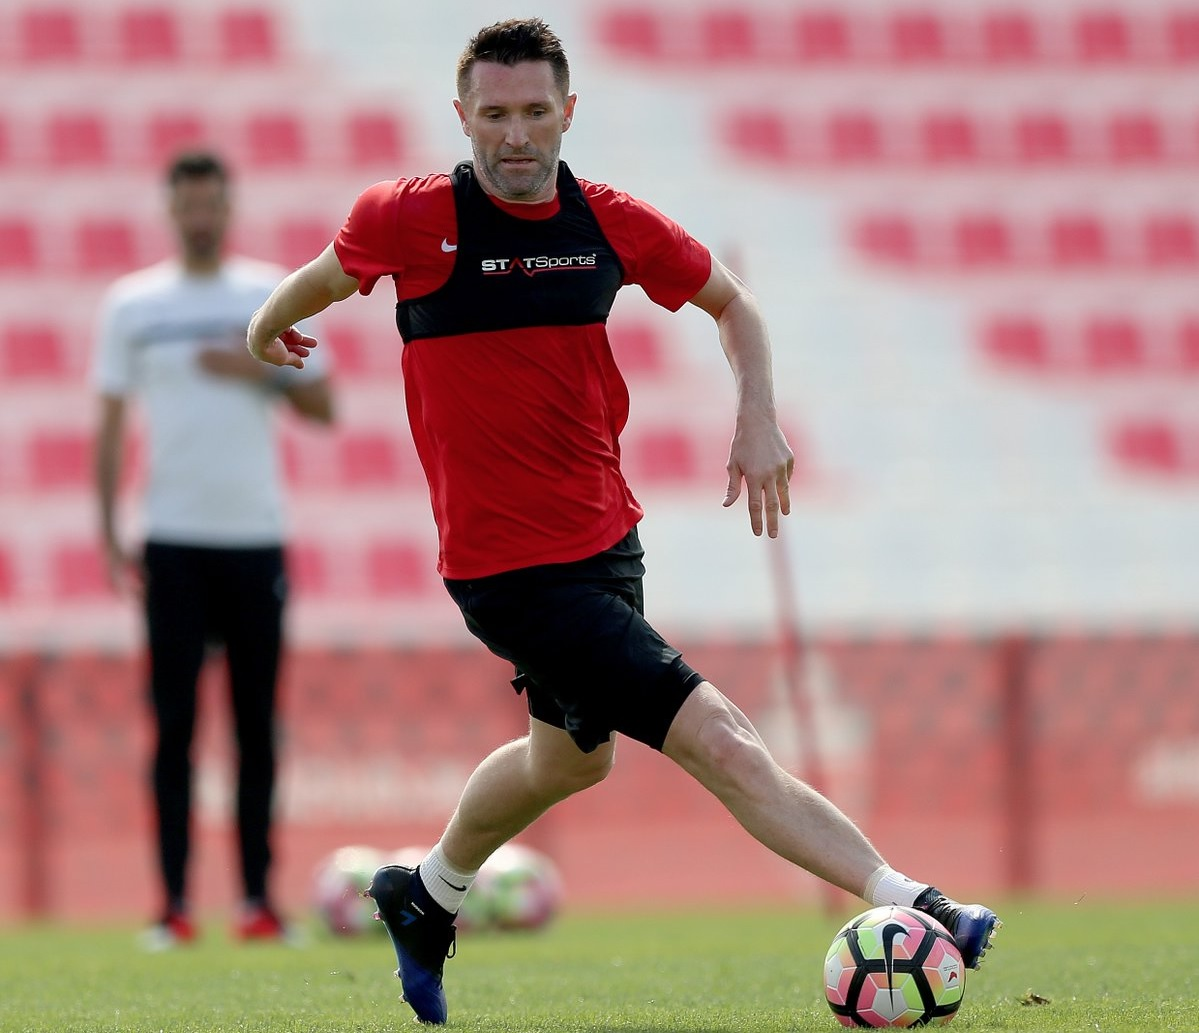 Robbie Keane - Al Ahli, UAE trainings